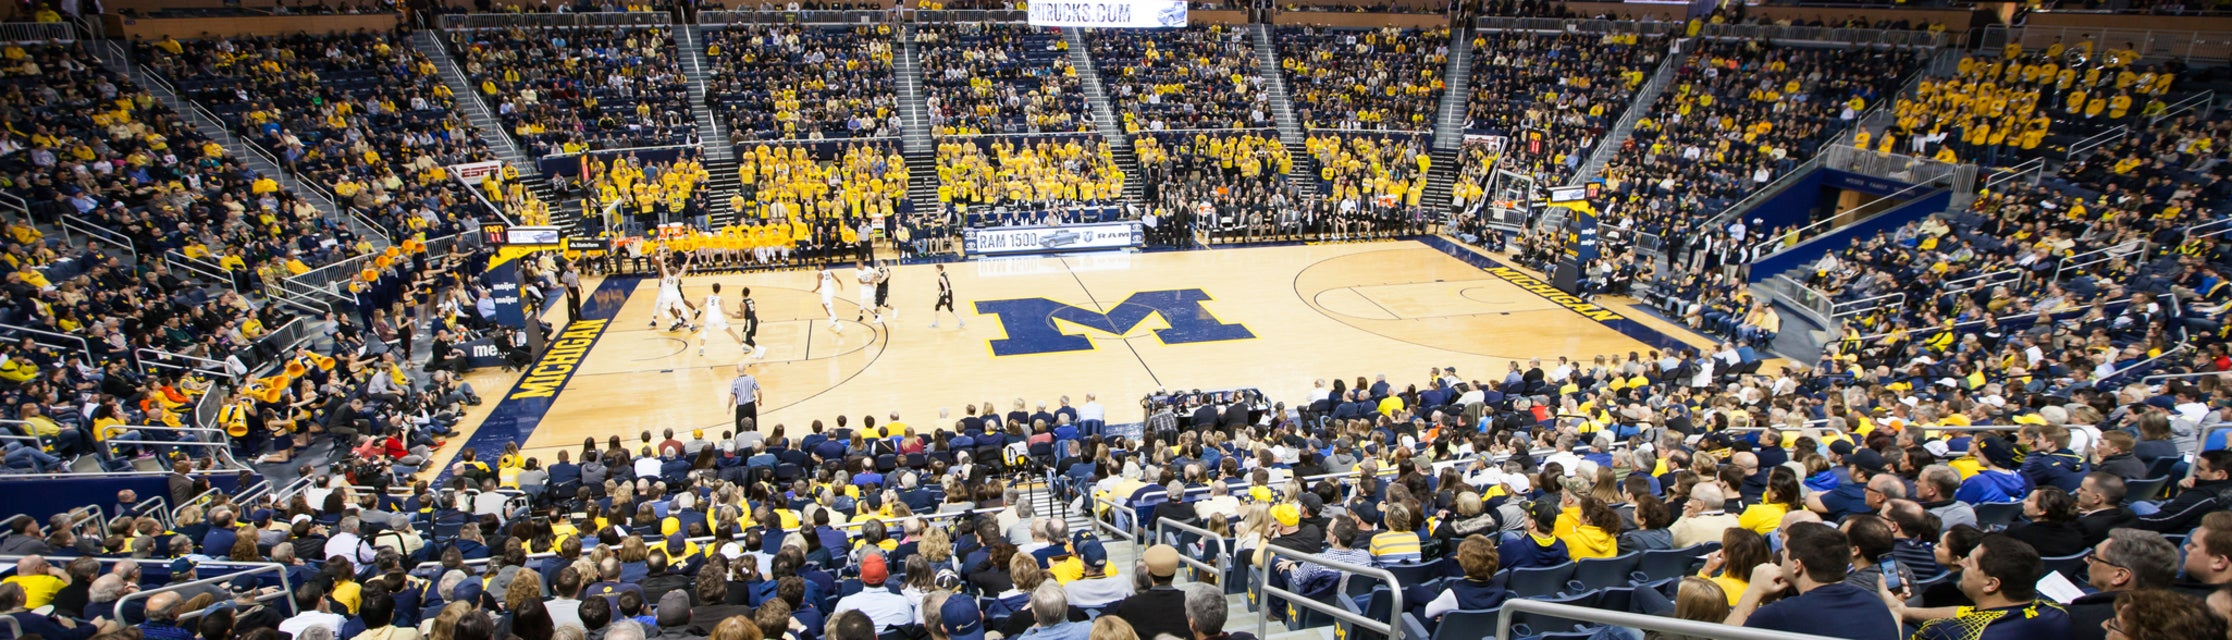 Michigan Basketball Tickets